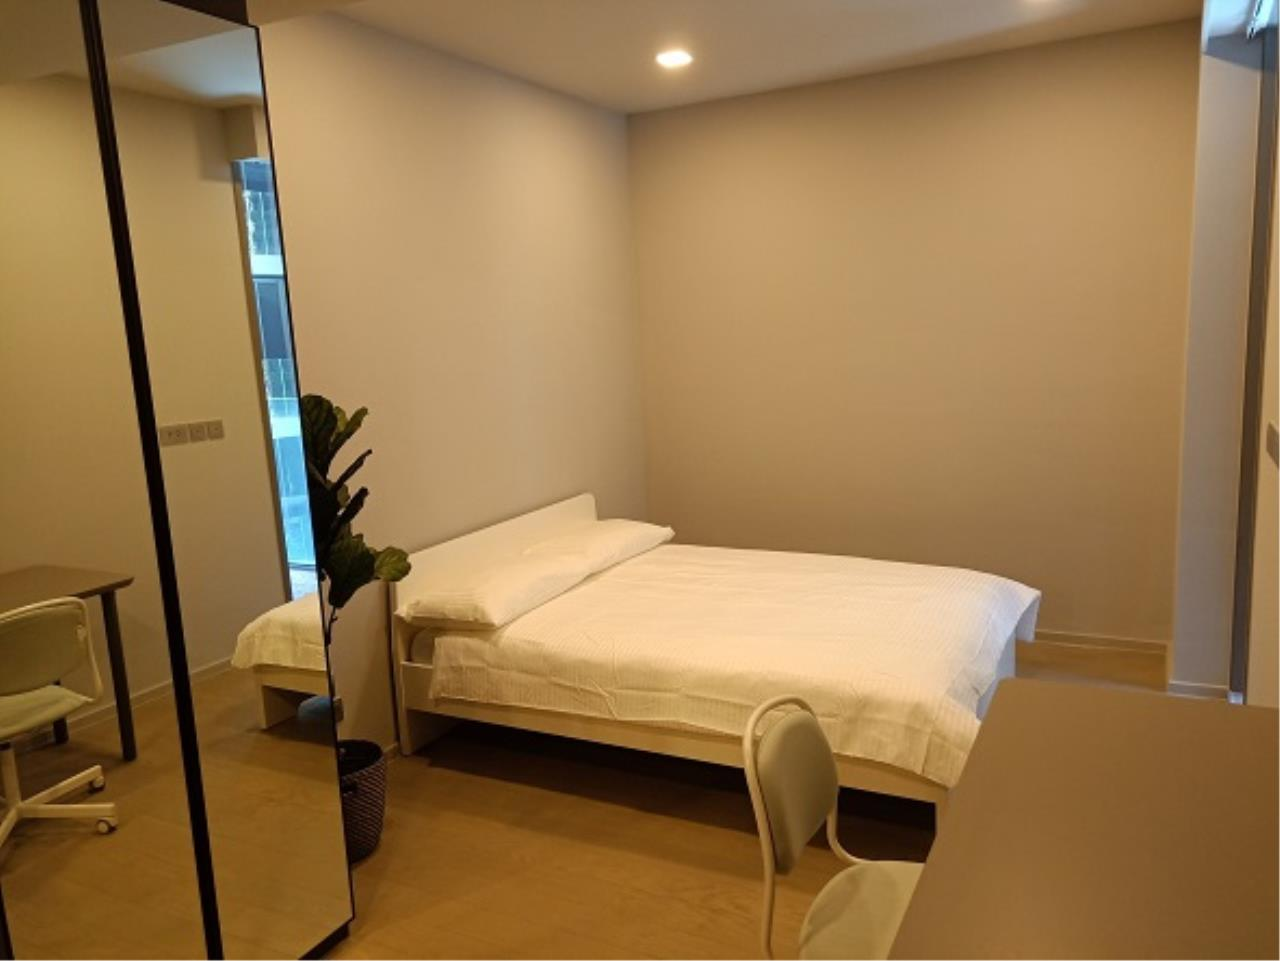 RE/MAX All Star Realty Agency's Ashton Residence 41 High Luxury Condo for sale/rent (BTS Phrom Pong) 8